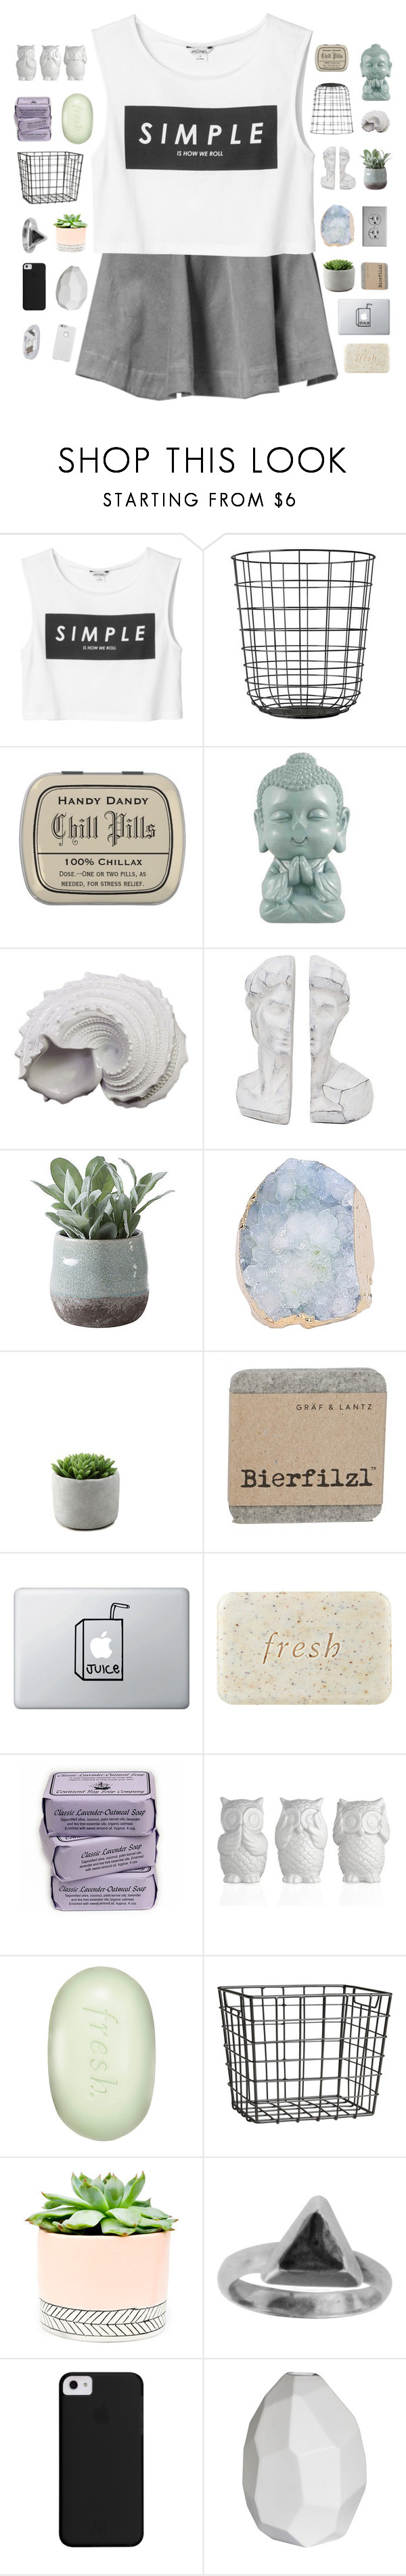 """""""how we roll"""" by abbeyso ❤ liked on Polyvore featuring Monki, Urban Trends Collection, Torre & Tagus, Fresh, H&M, Hostess, Zoemou, CB2 and Case-Mate"""